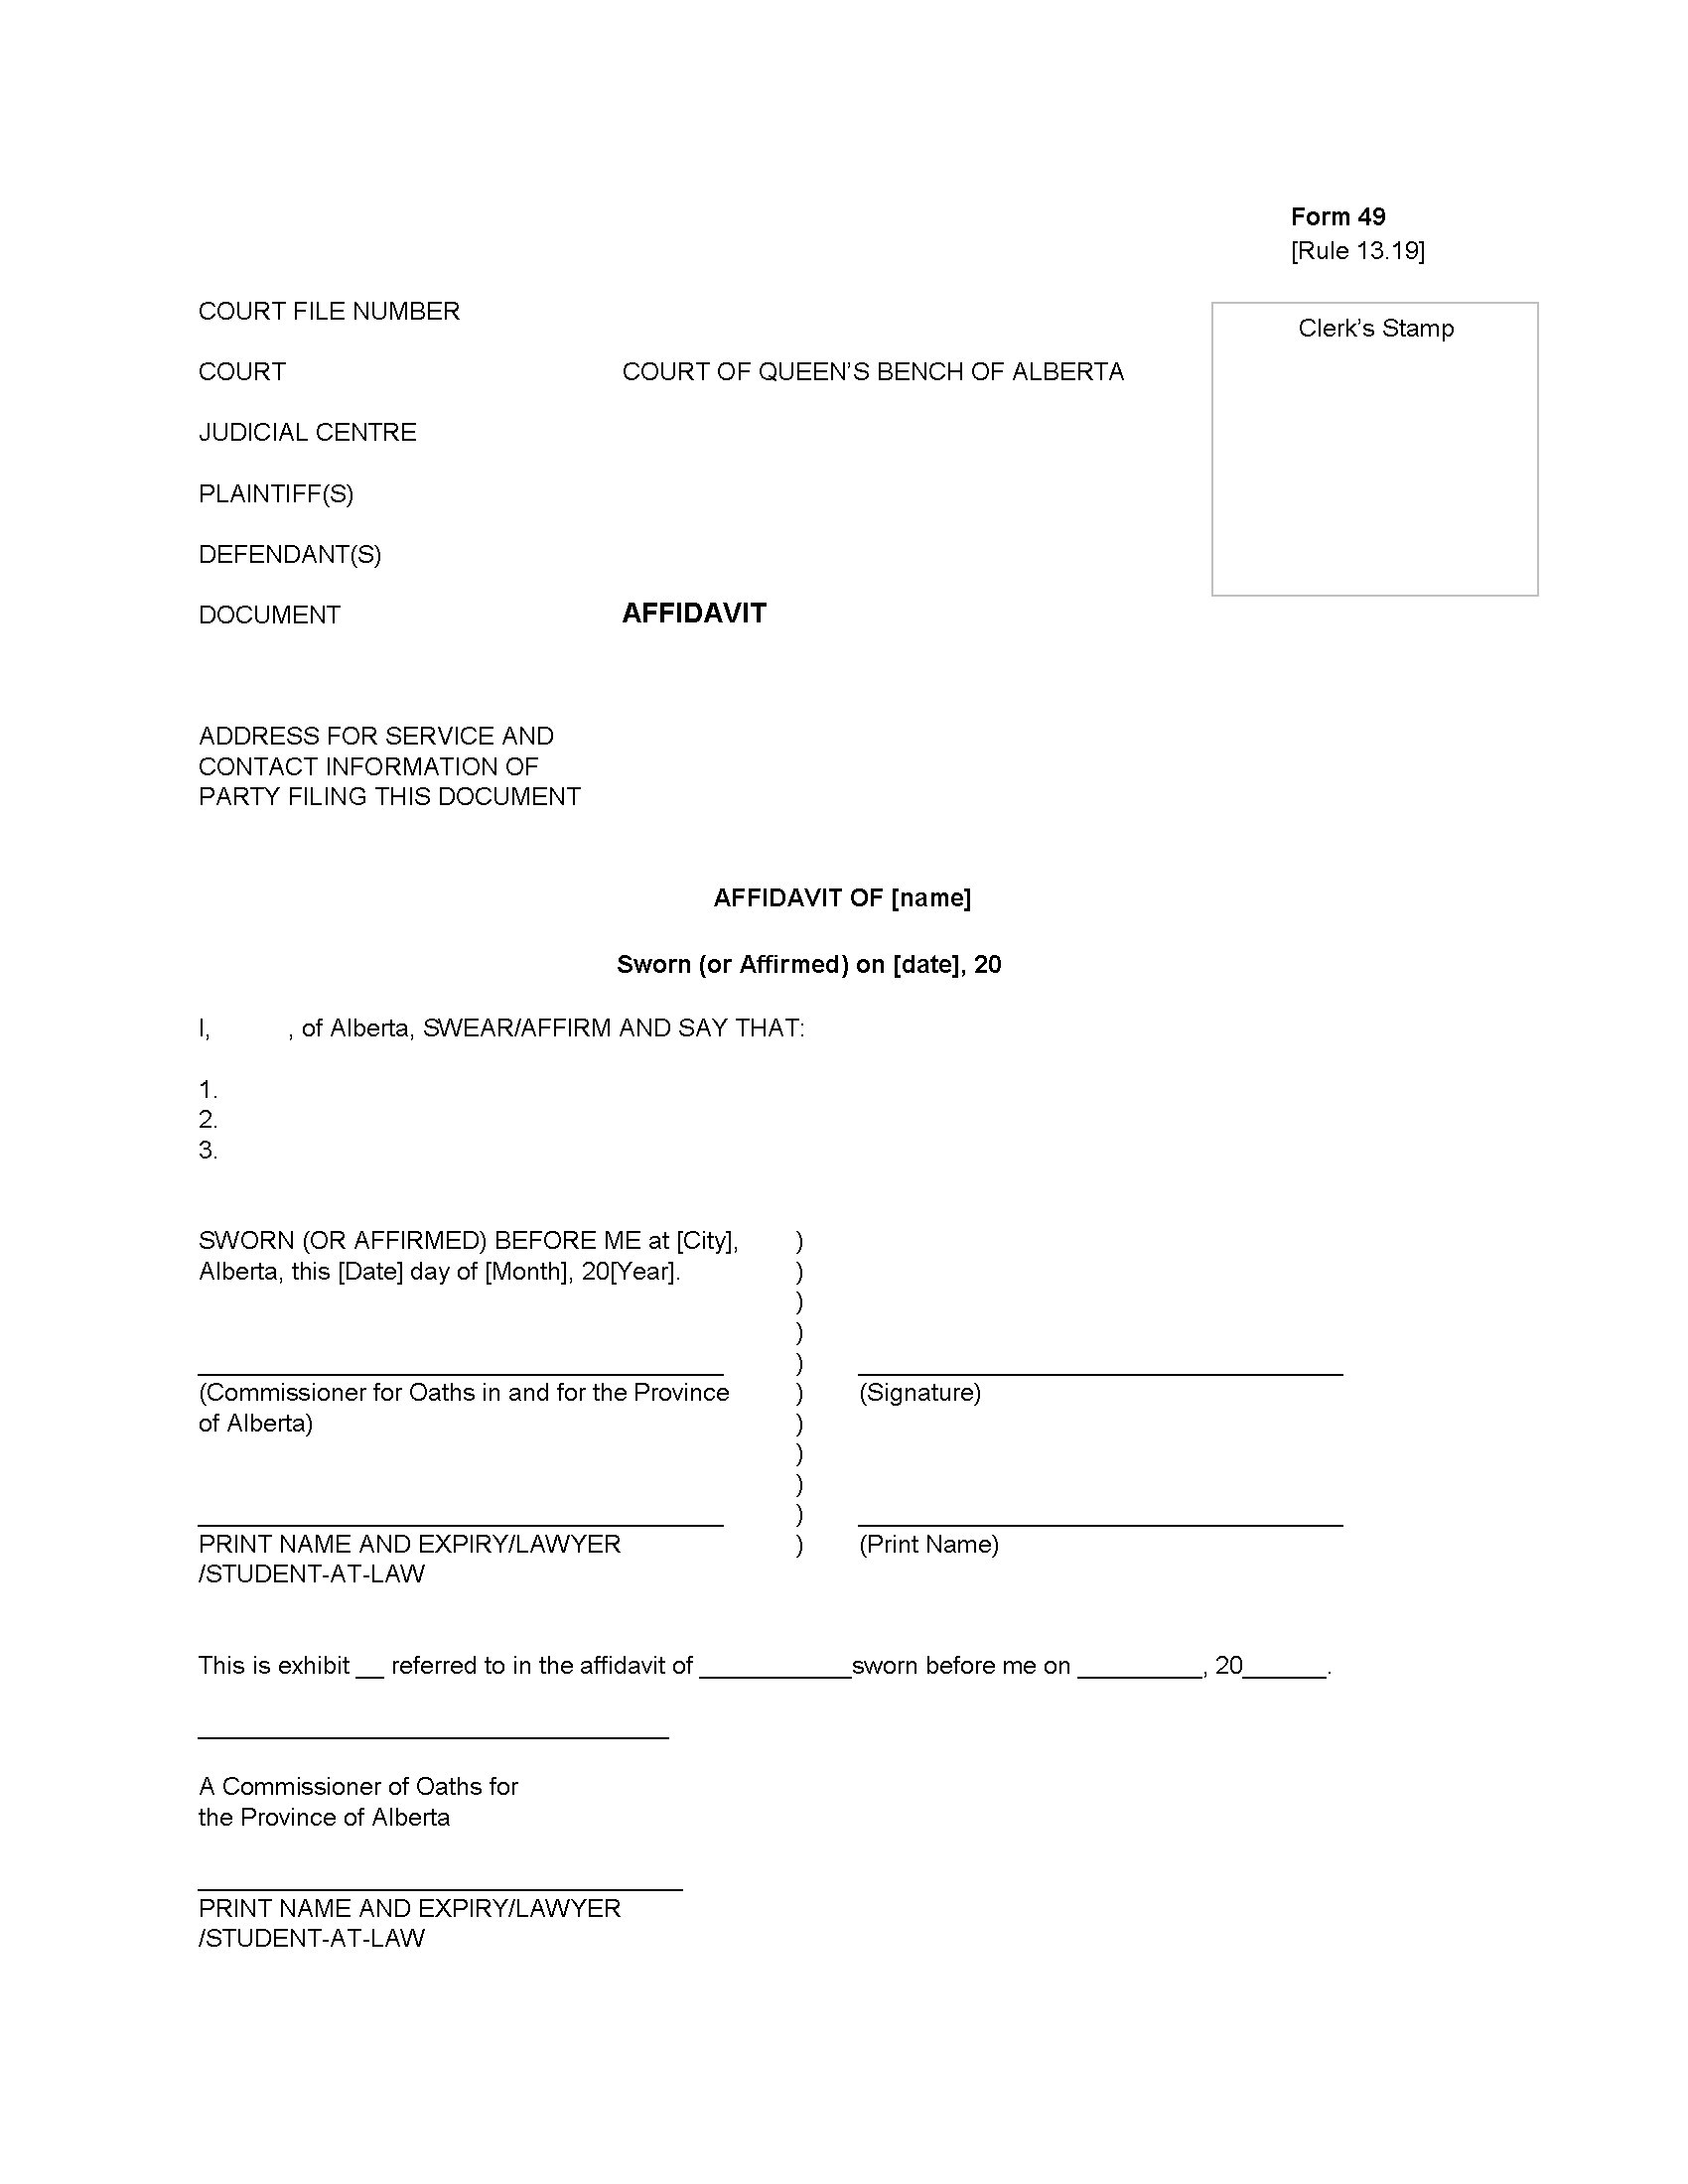 Alberta Affidavit Form Legal Forms And Business Templates - Free law forms